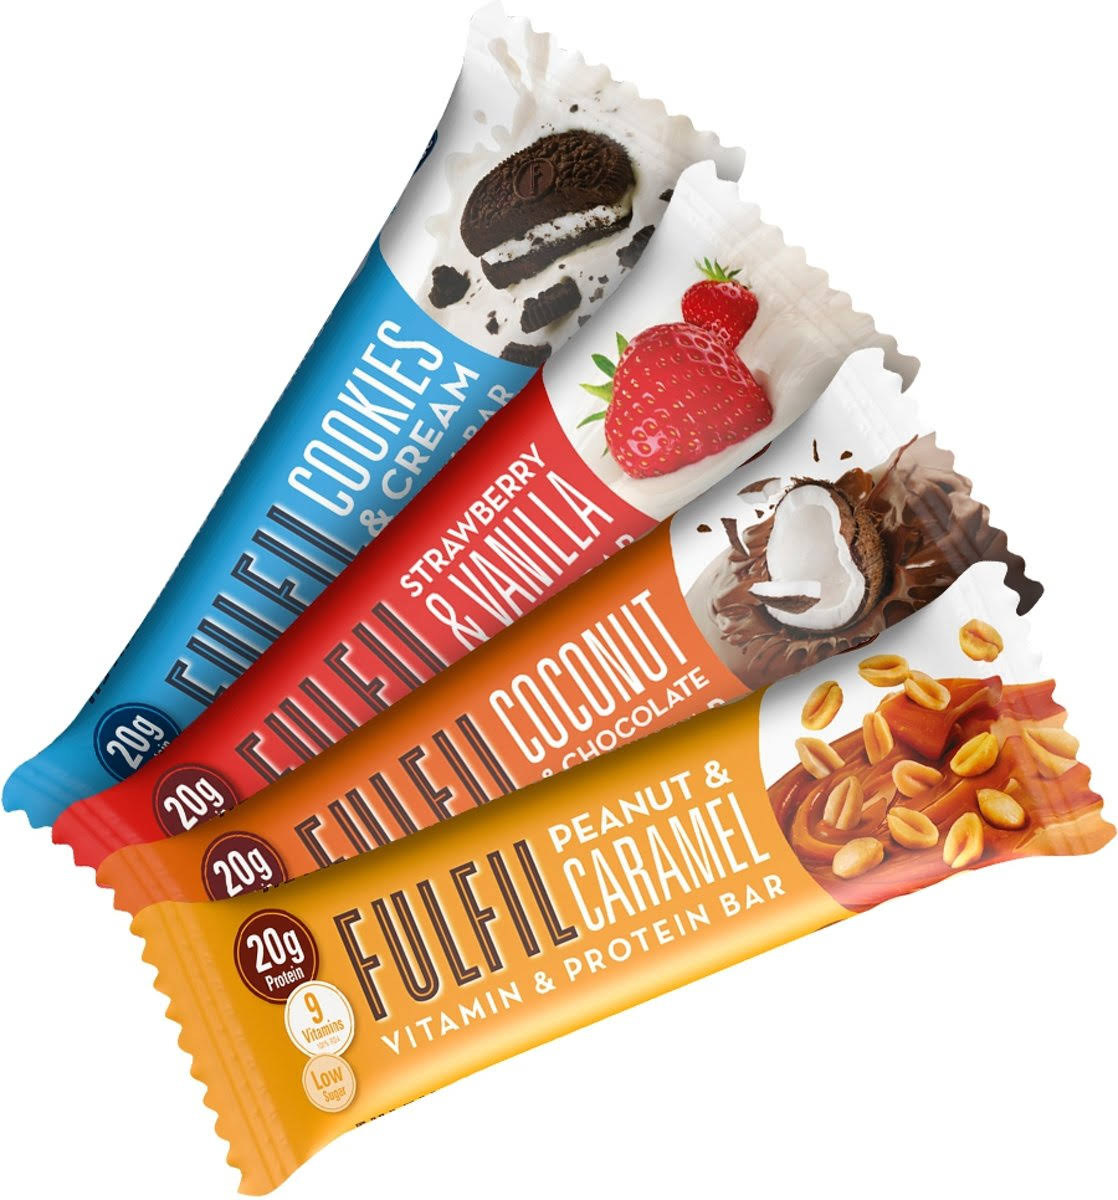 Fulfil Vitamin & Protein Bar 15 Bars Peanut & Caramel